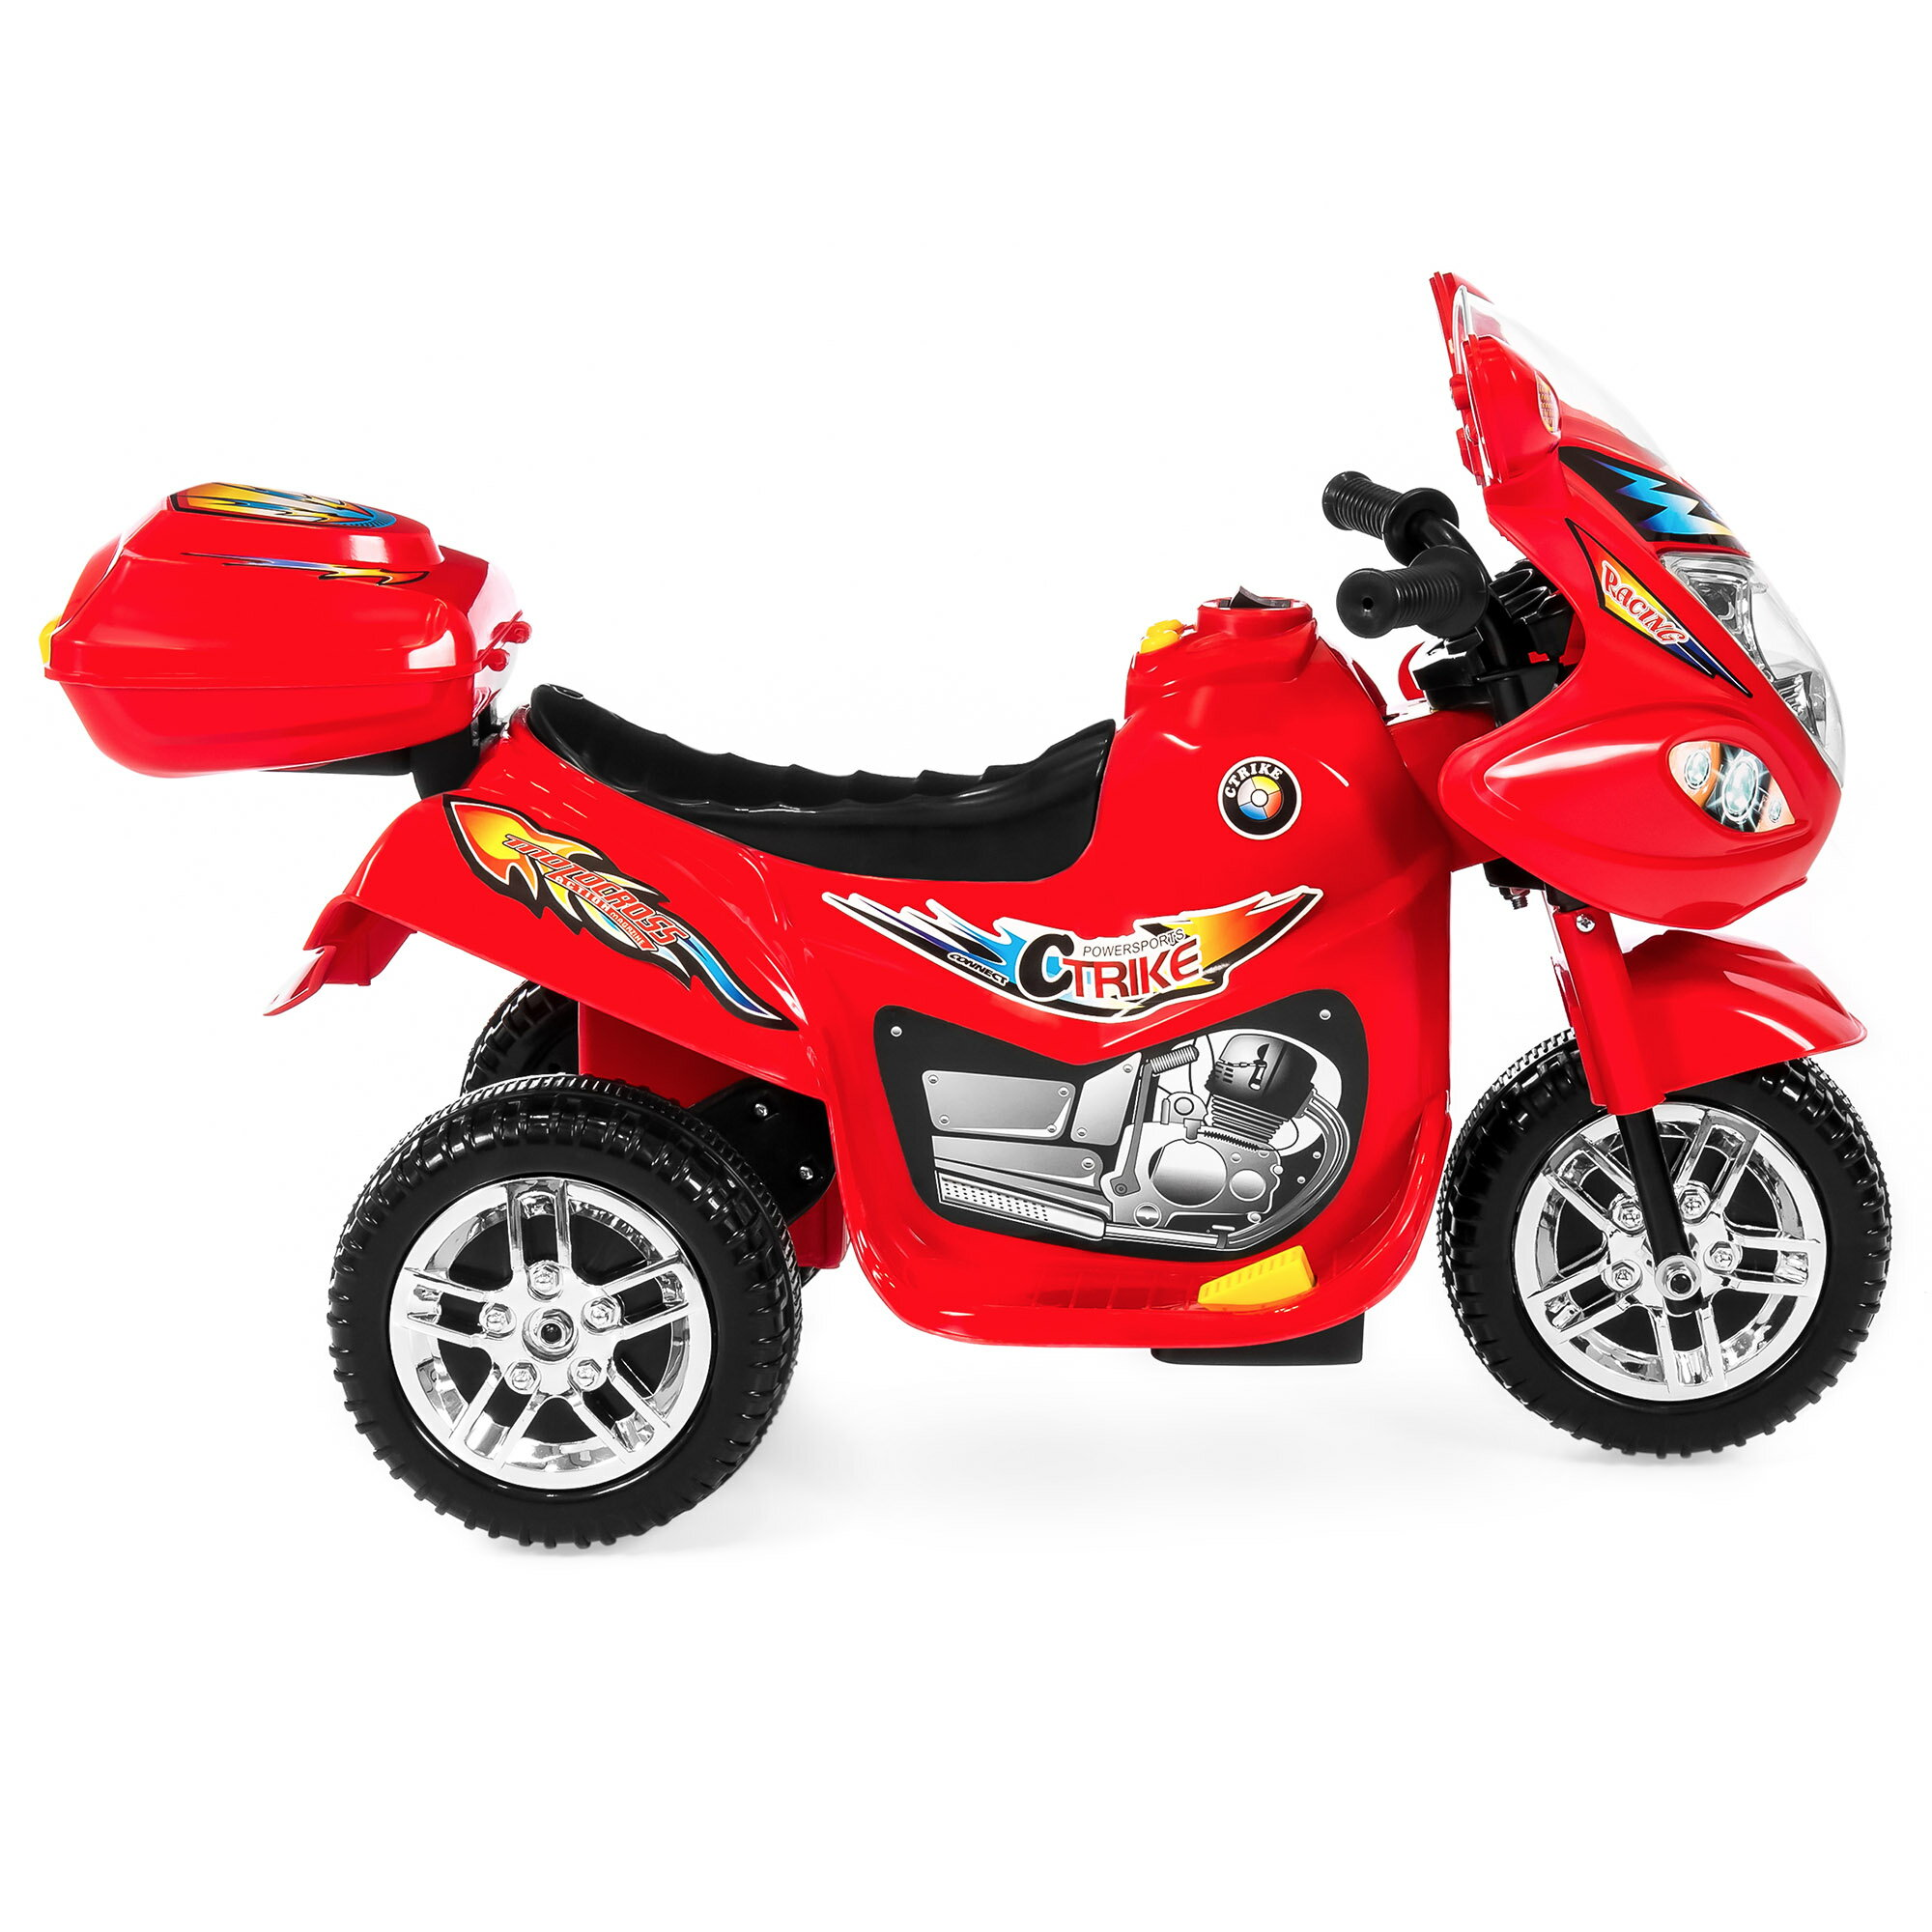 Best Choice Products 6V Kids Battery Powered 3-Wheel Motorcycle Ride-On Toy w/ LED Lights, Music, Horn, Storage - Red 2